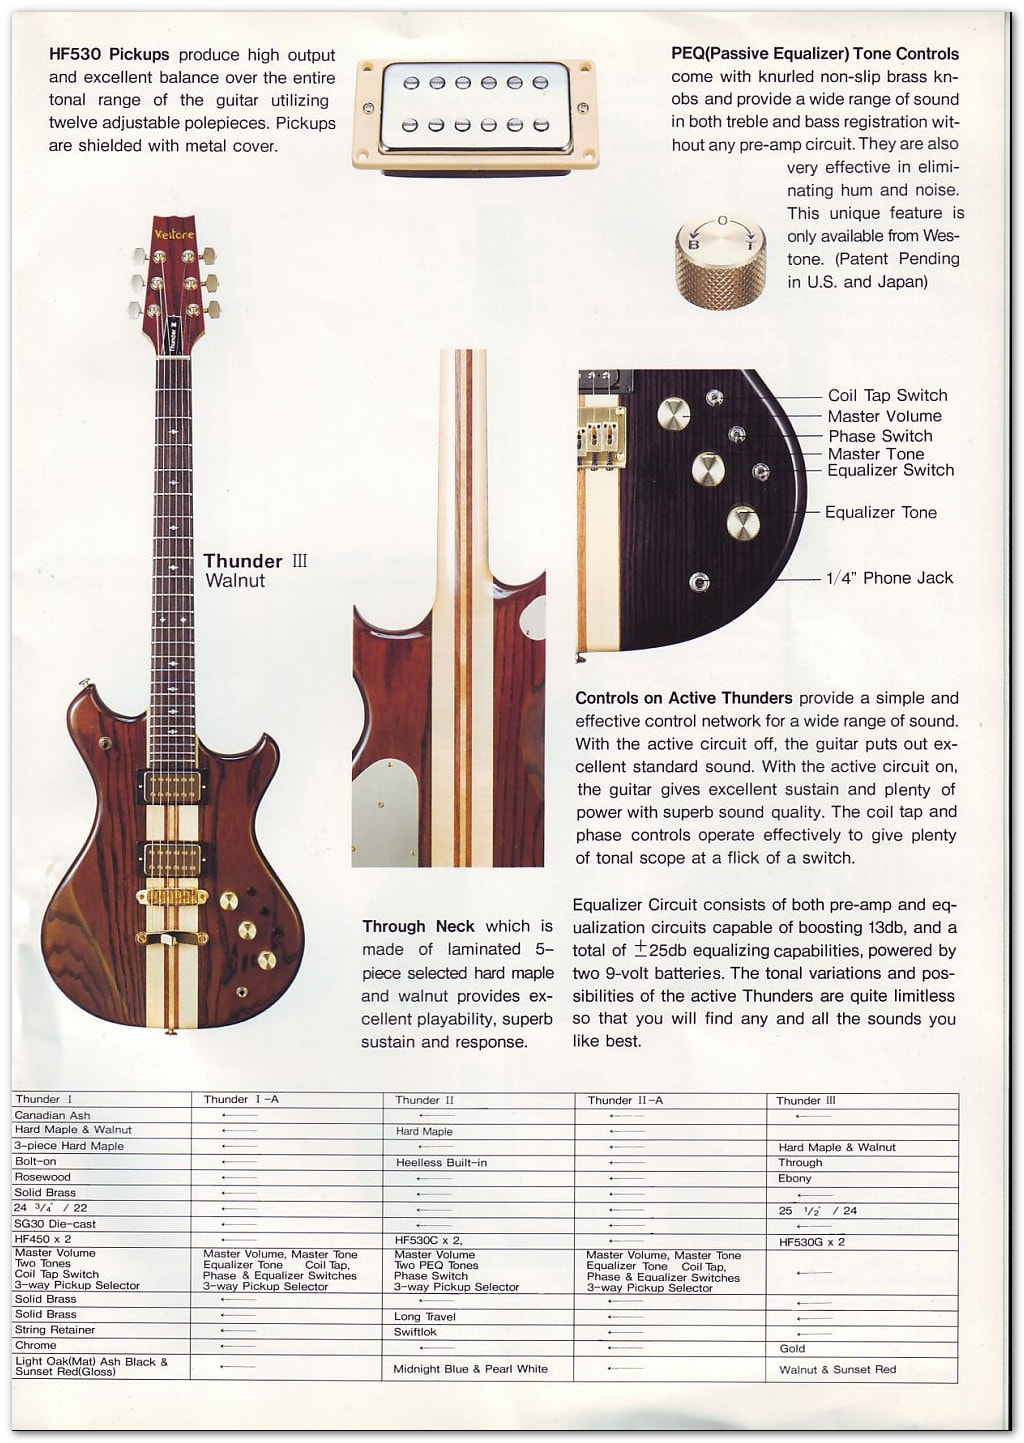 ... gretsch bst guitar wiring diagrams pontiac 400 engine pulley diagram  Gretsch 5120 Setup famous phase switch